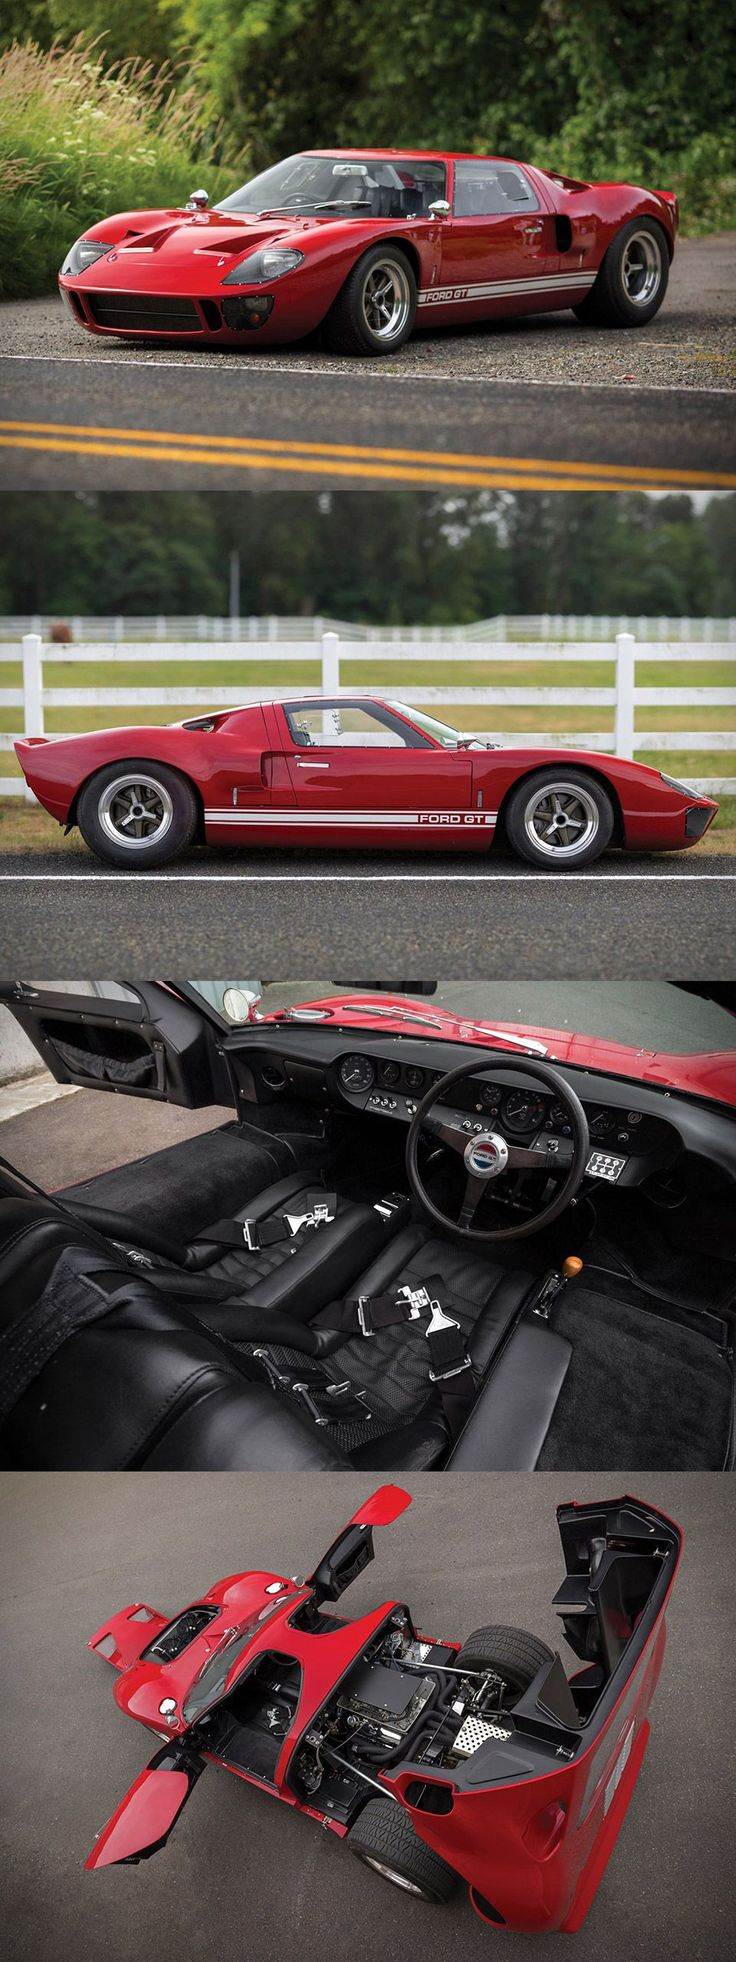 1966 Ford GT40 https://www.amazon.co.uk/Baby-Car-Mirror-Shatterproof-Installation/dp/B06XHG6SSY